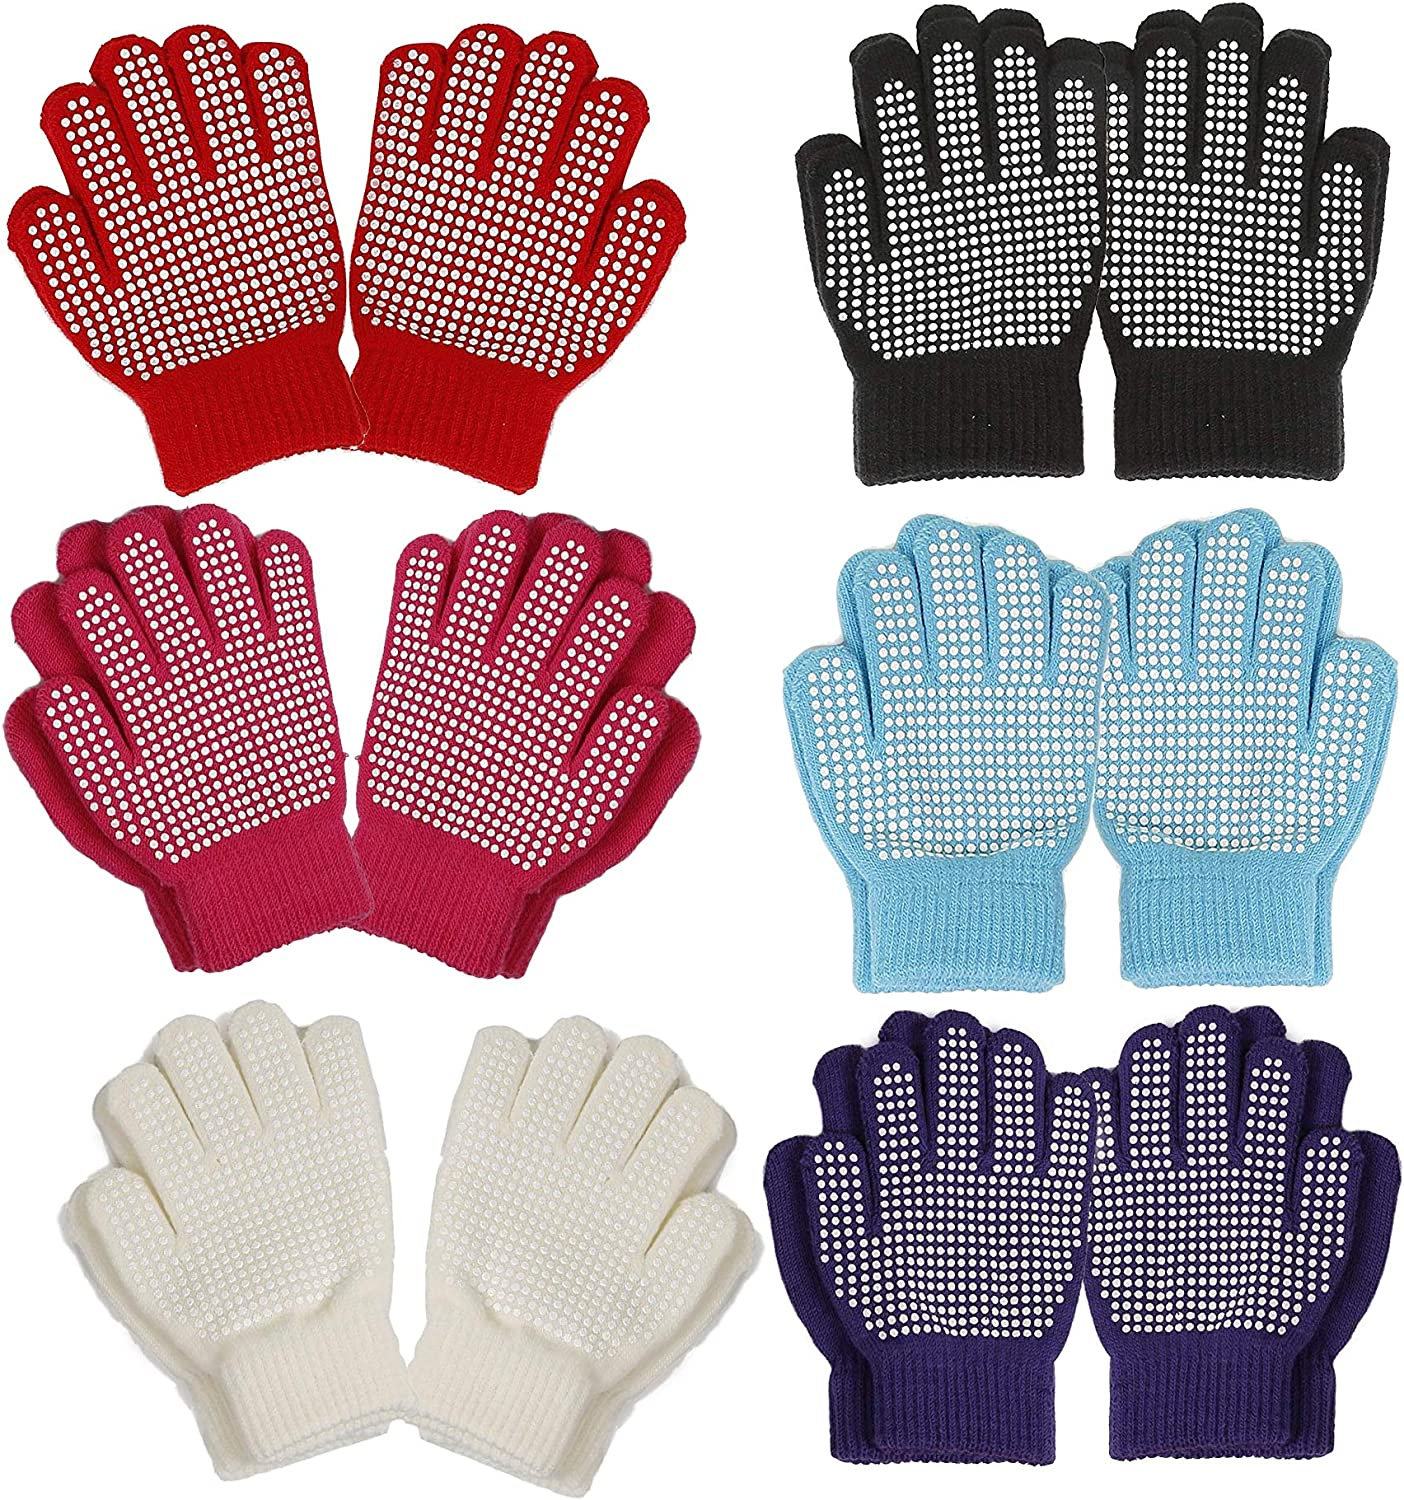 Magic Gloves Kids Themed Gripper Stretchy Gloves